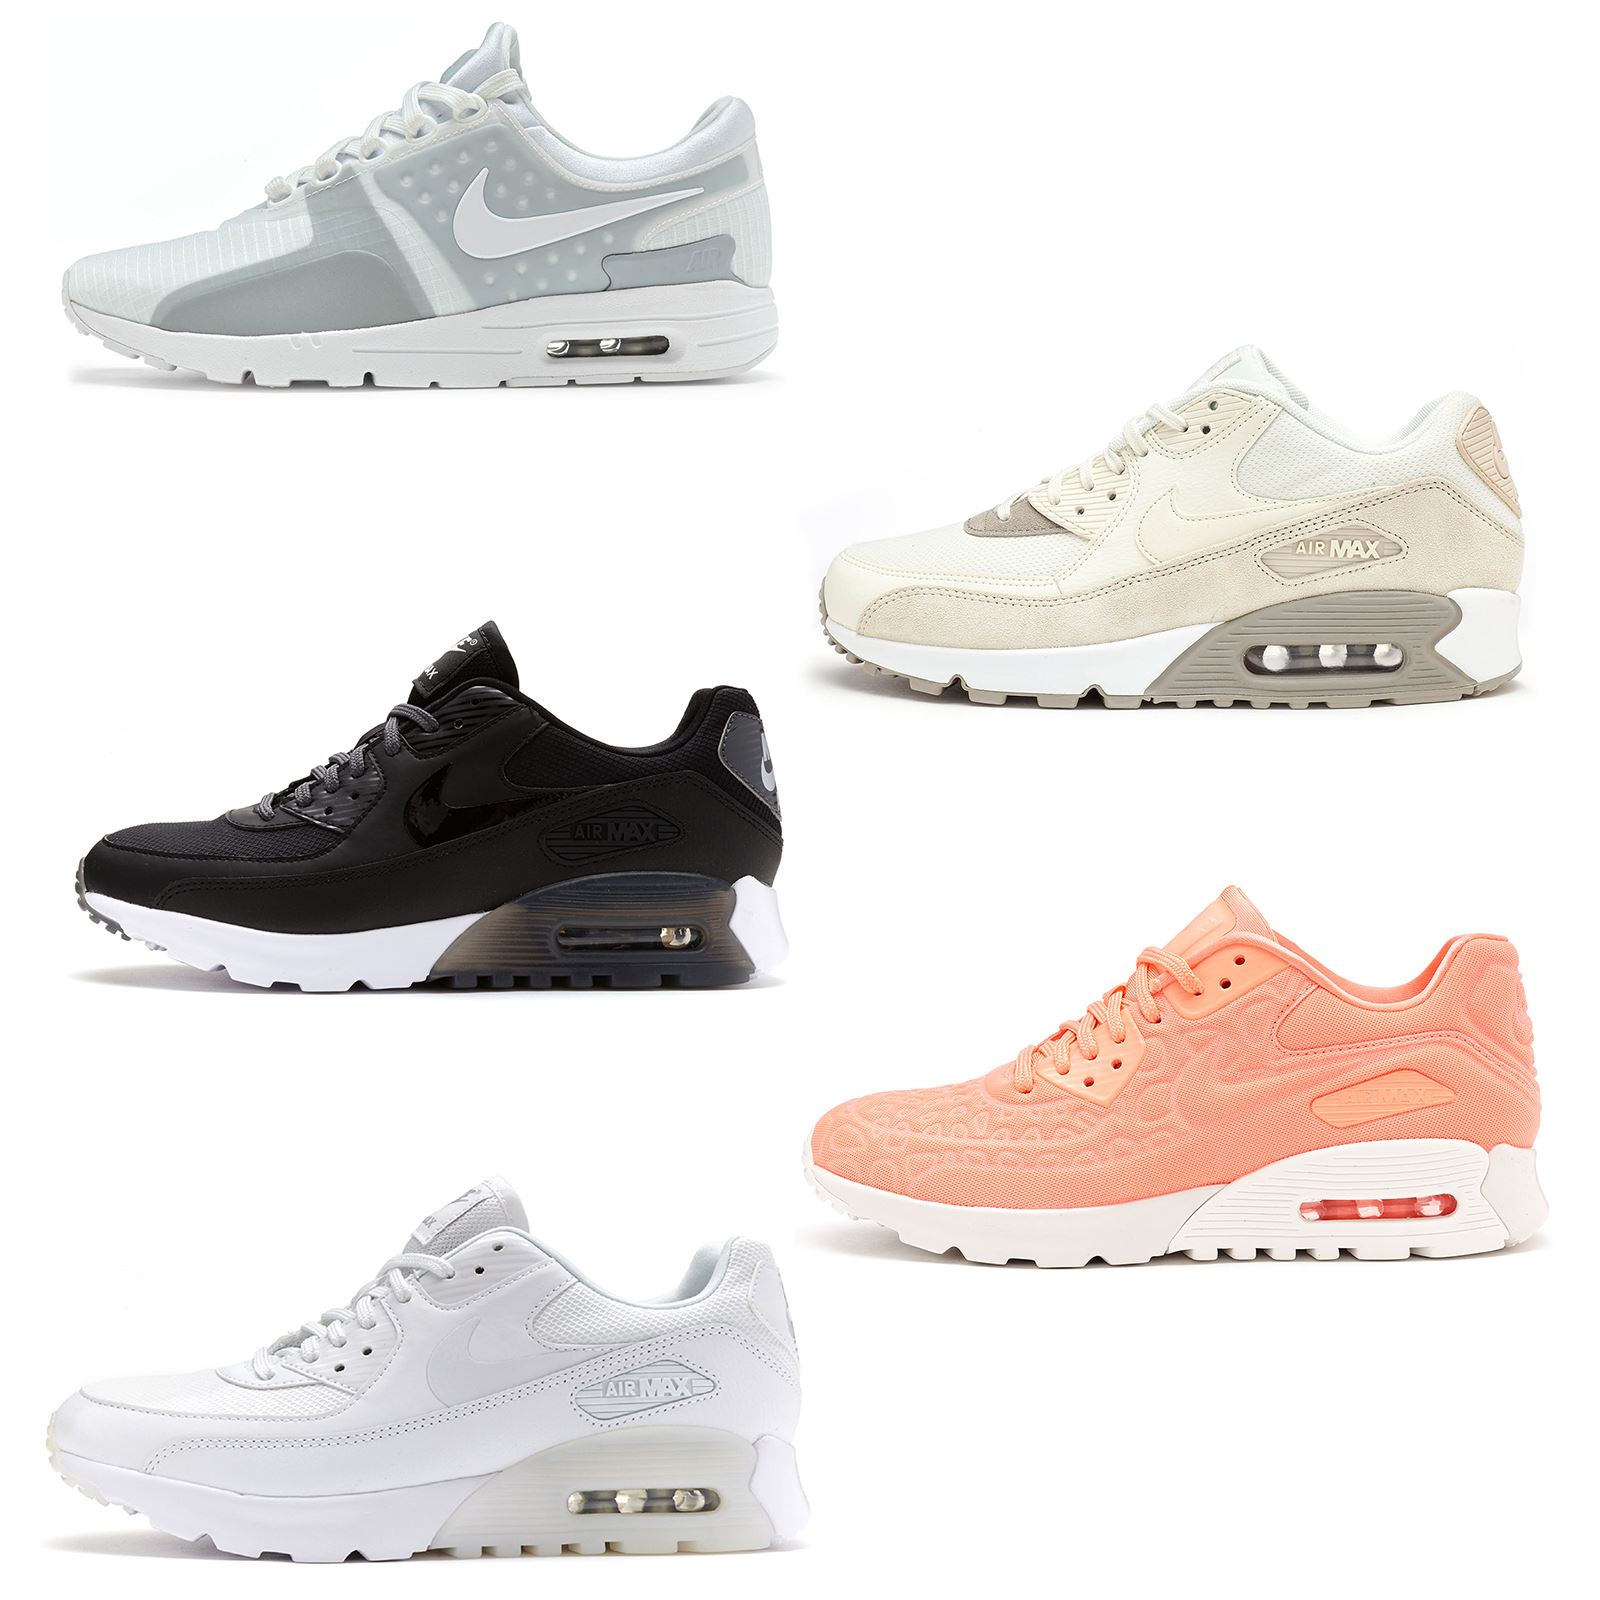 new product 85310 d3fbc Details about Women Nike Air Max 90 Essential Premium Lunar Leather Suede  Trainers All Sizes